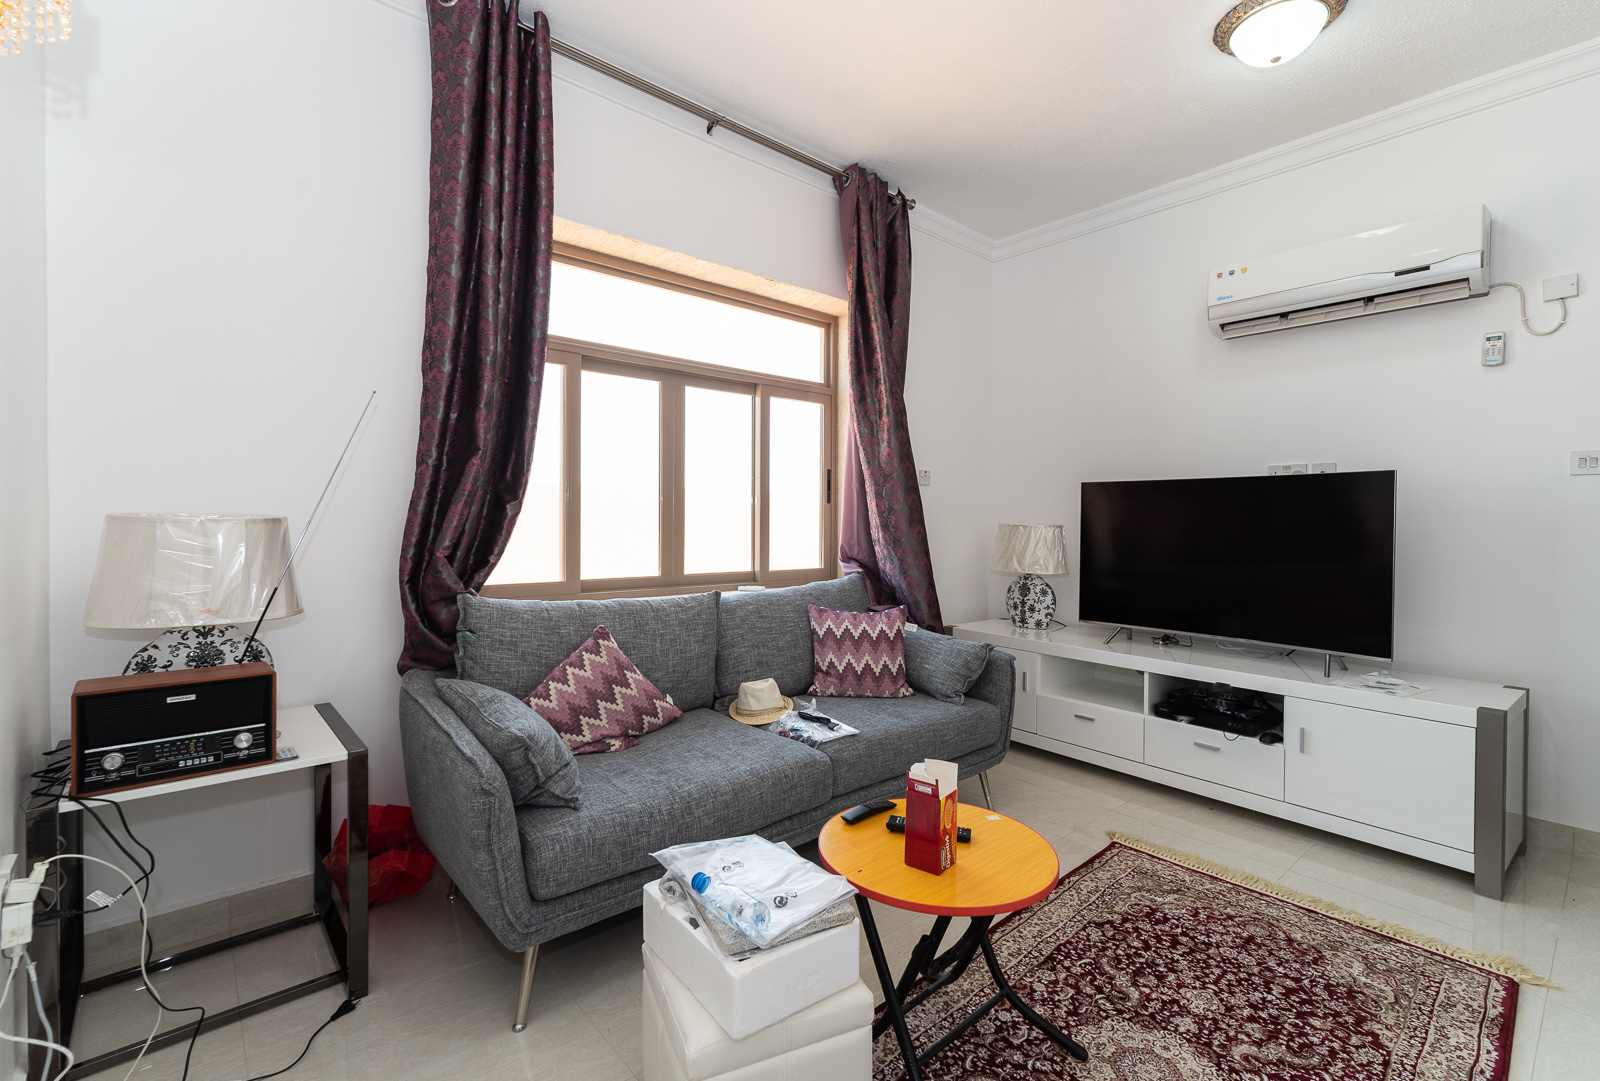 Fnaitees – brand new, furnished studio